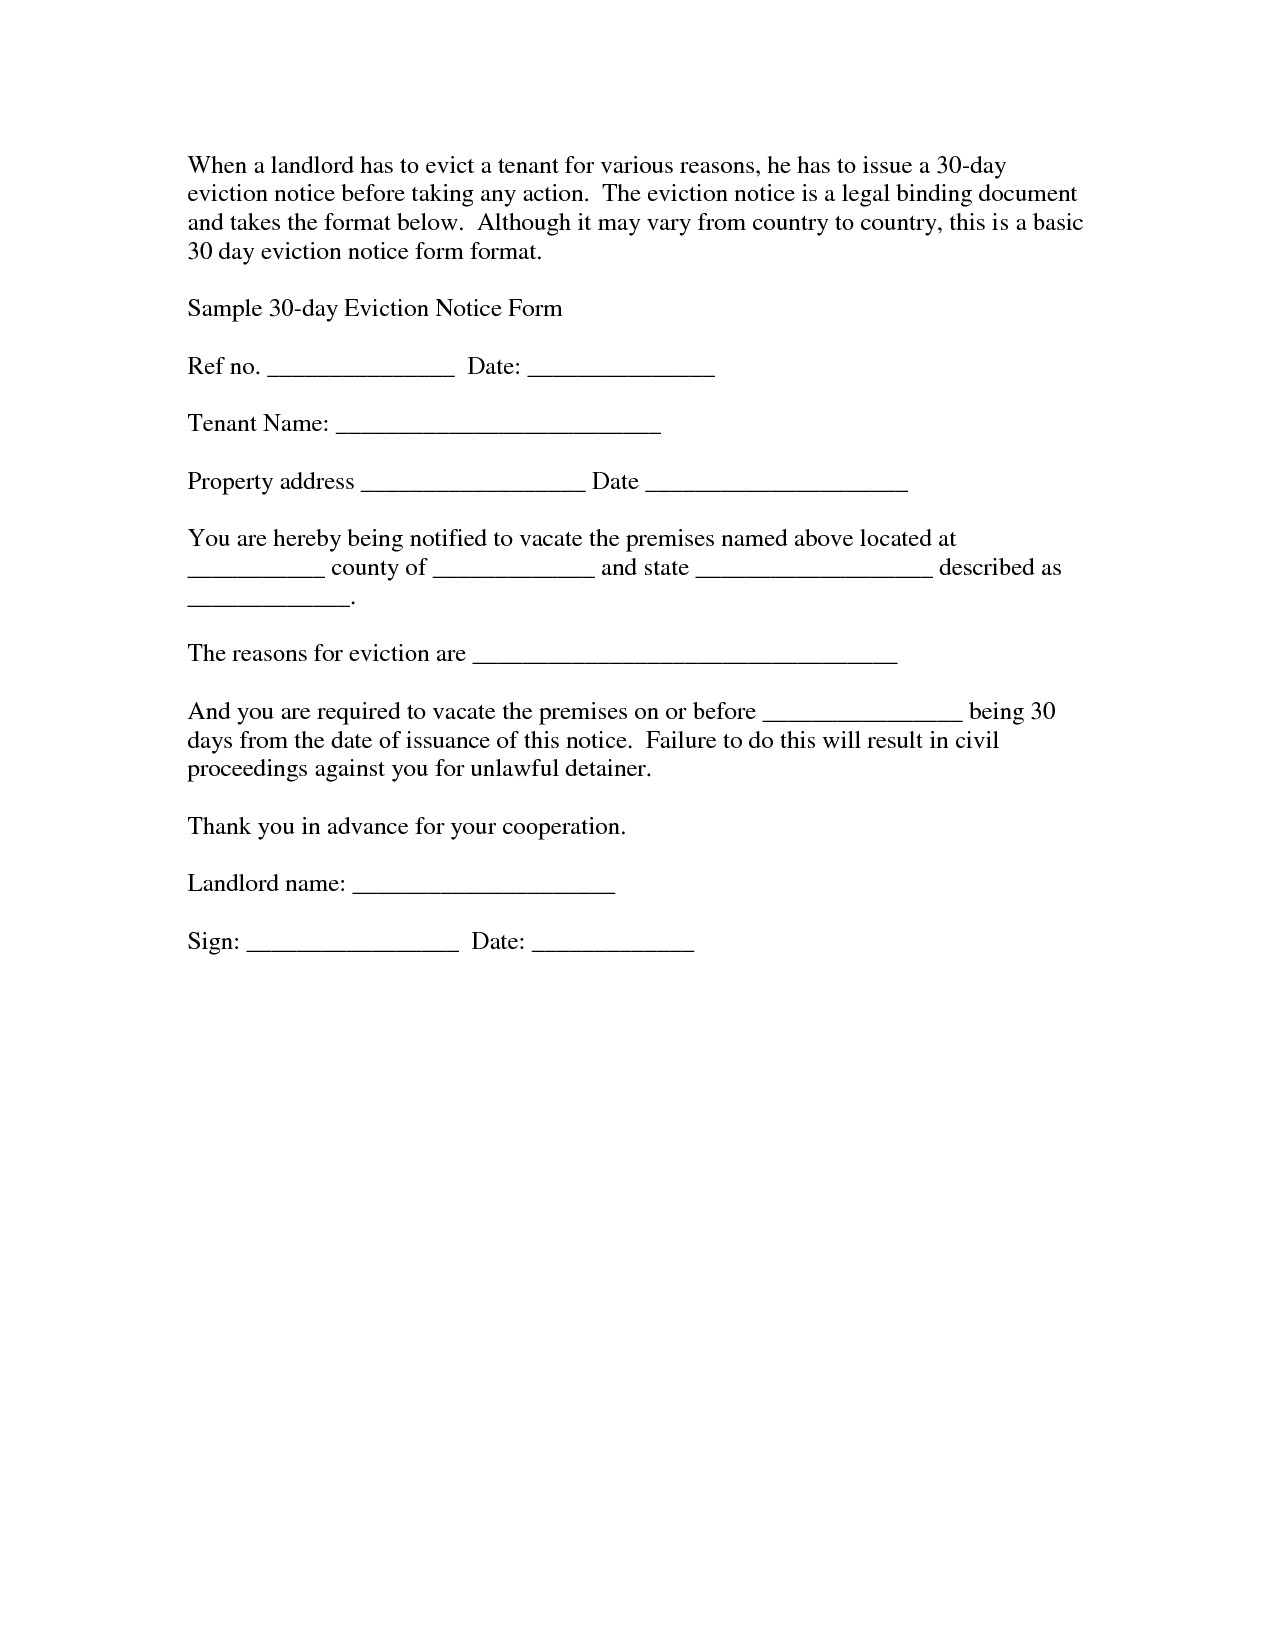 eviction notice letter template example-Eviction Notices Fresh Three Day Eviction Notice form top An Eviction Notice Can Be 8-i